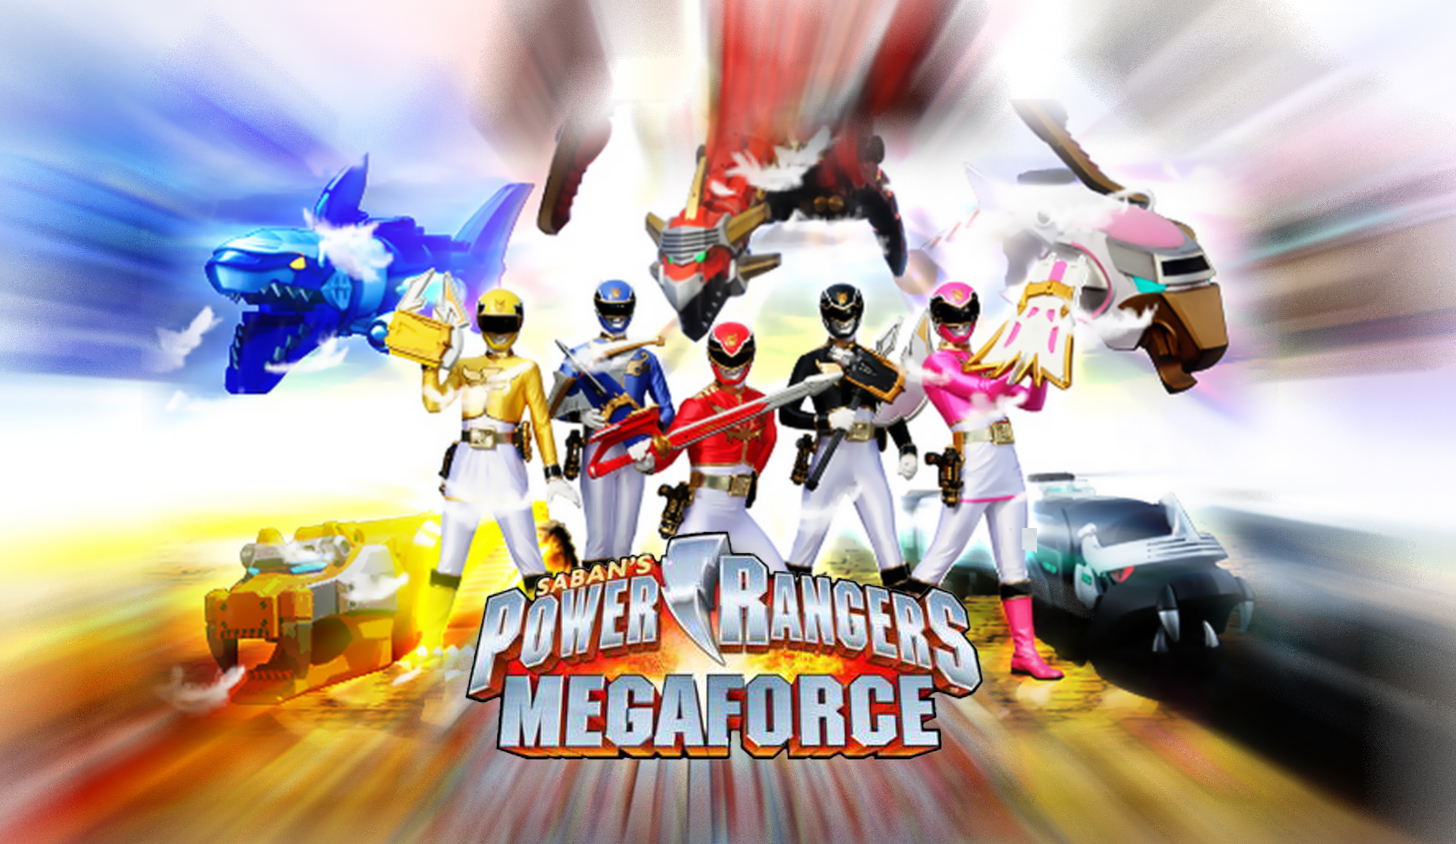 Power Rangers Megaforce 7 Серия, На Русском